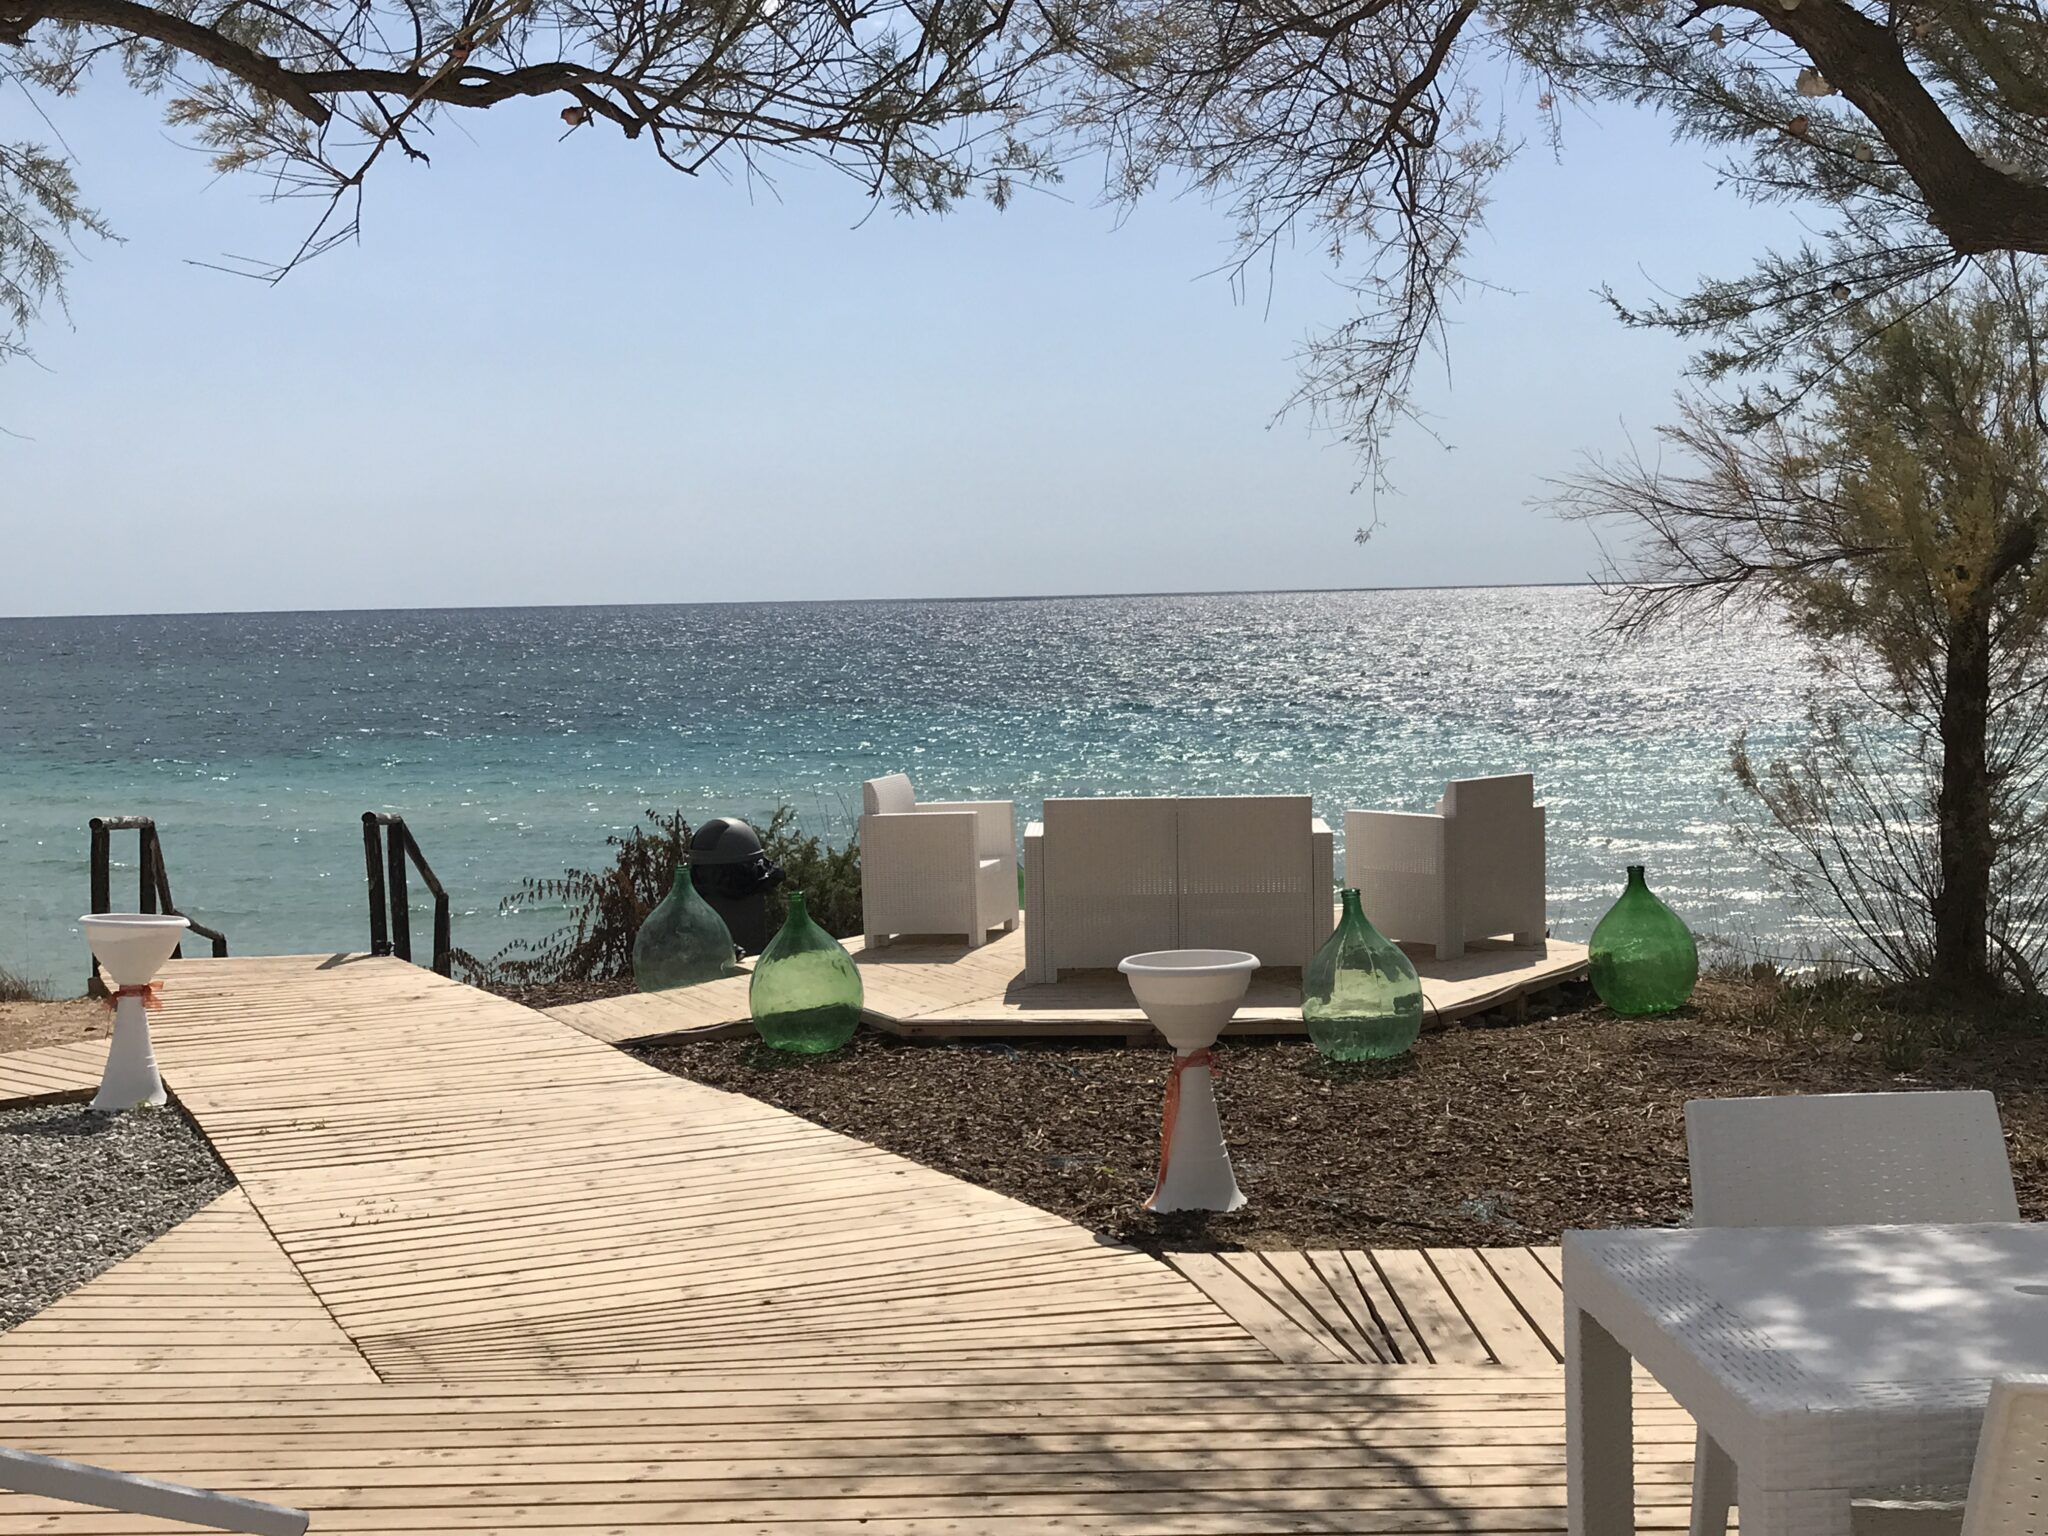 2017 – Puglia Region Day 2 – A Day At The Sea & Baking With Anna